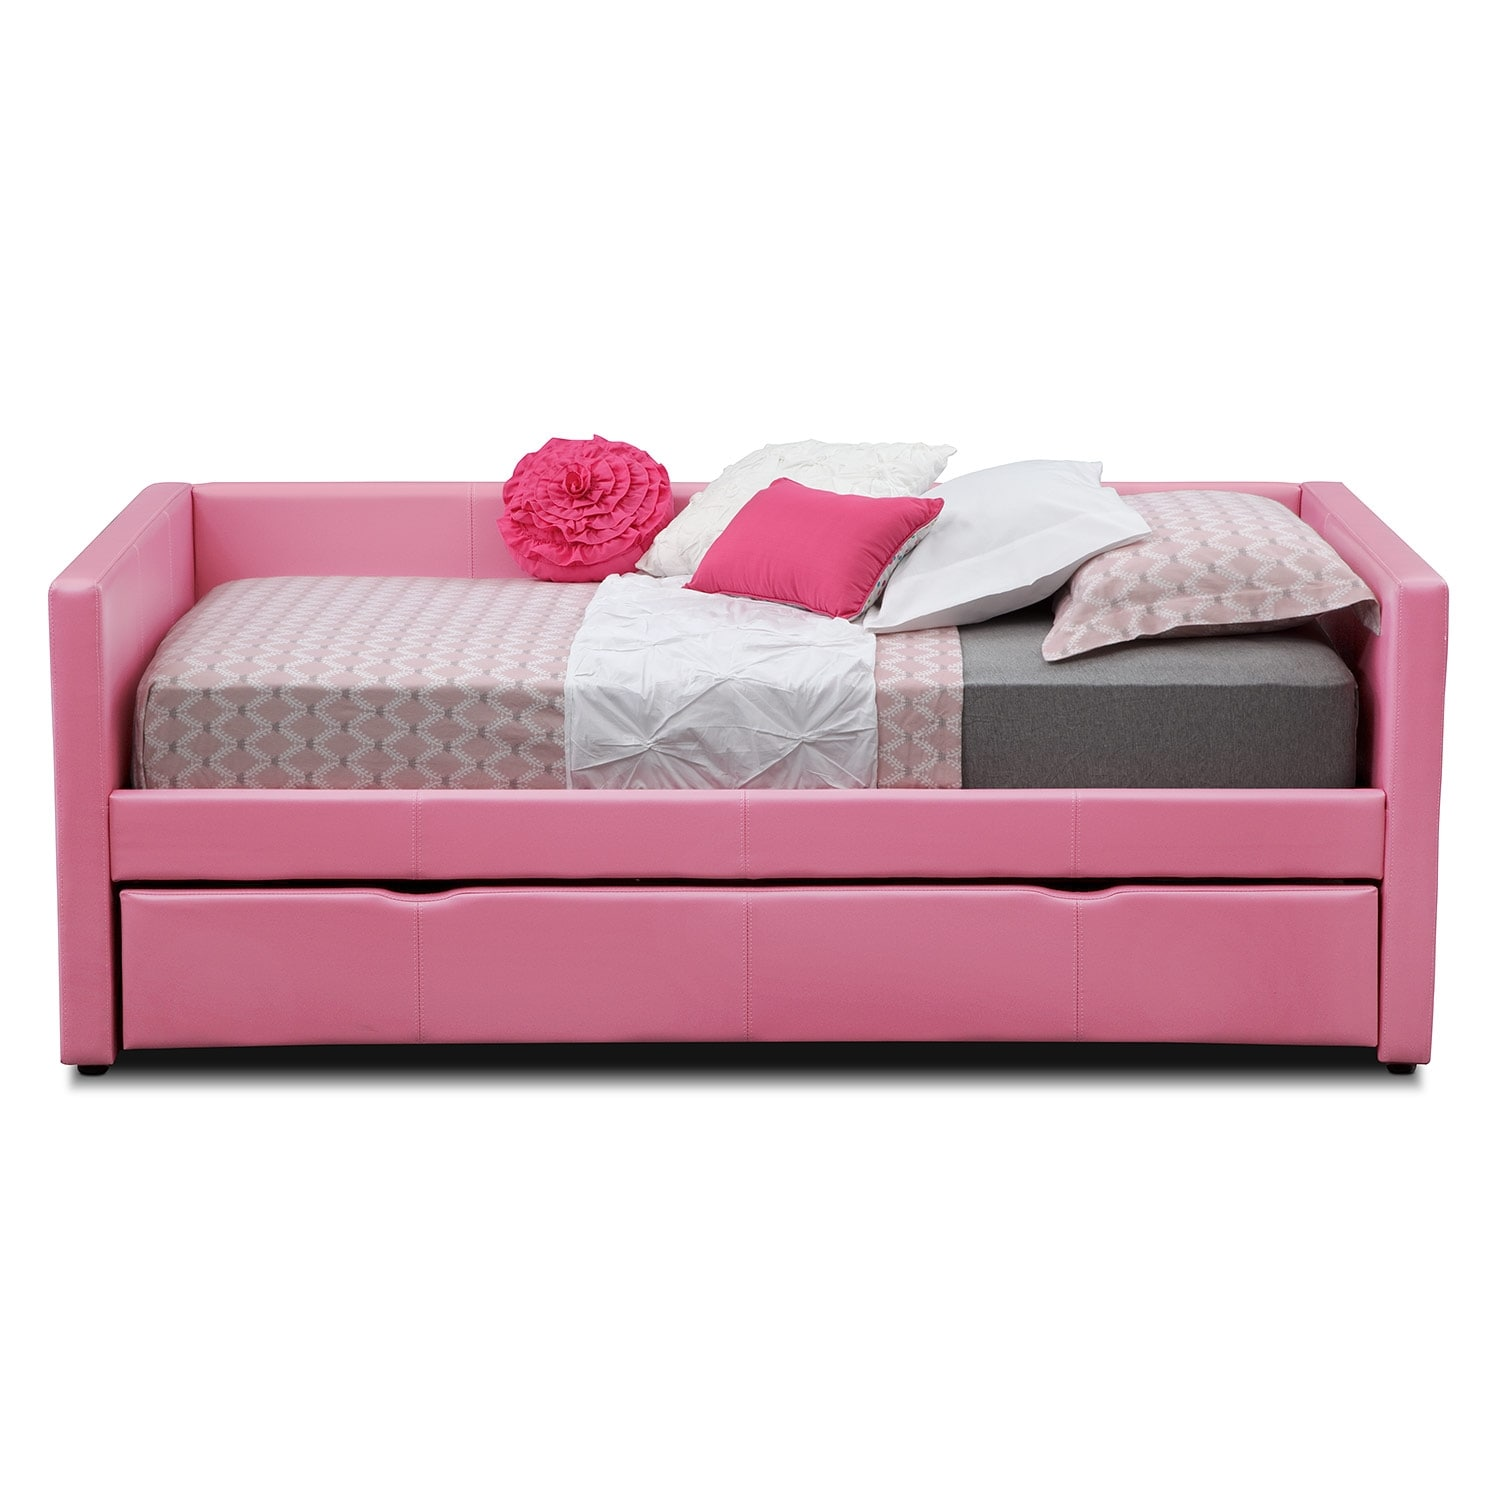 Carey Full Daybed With Trundle Pink Value City Furniture